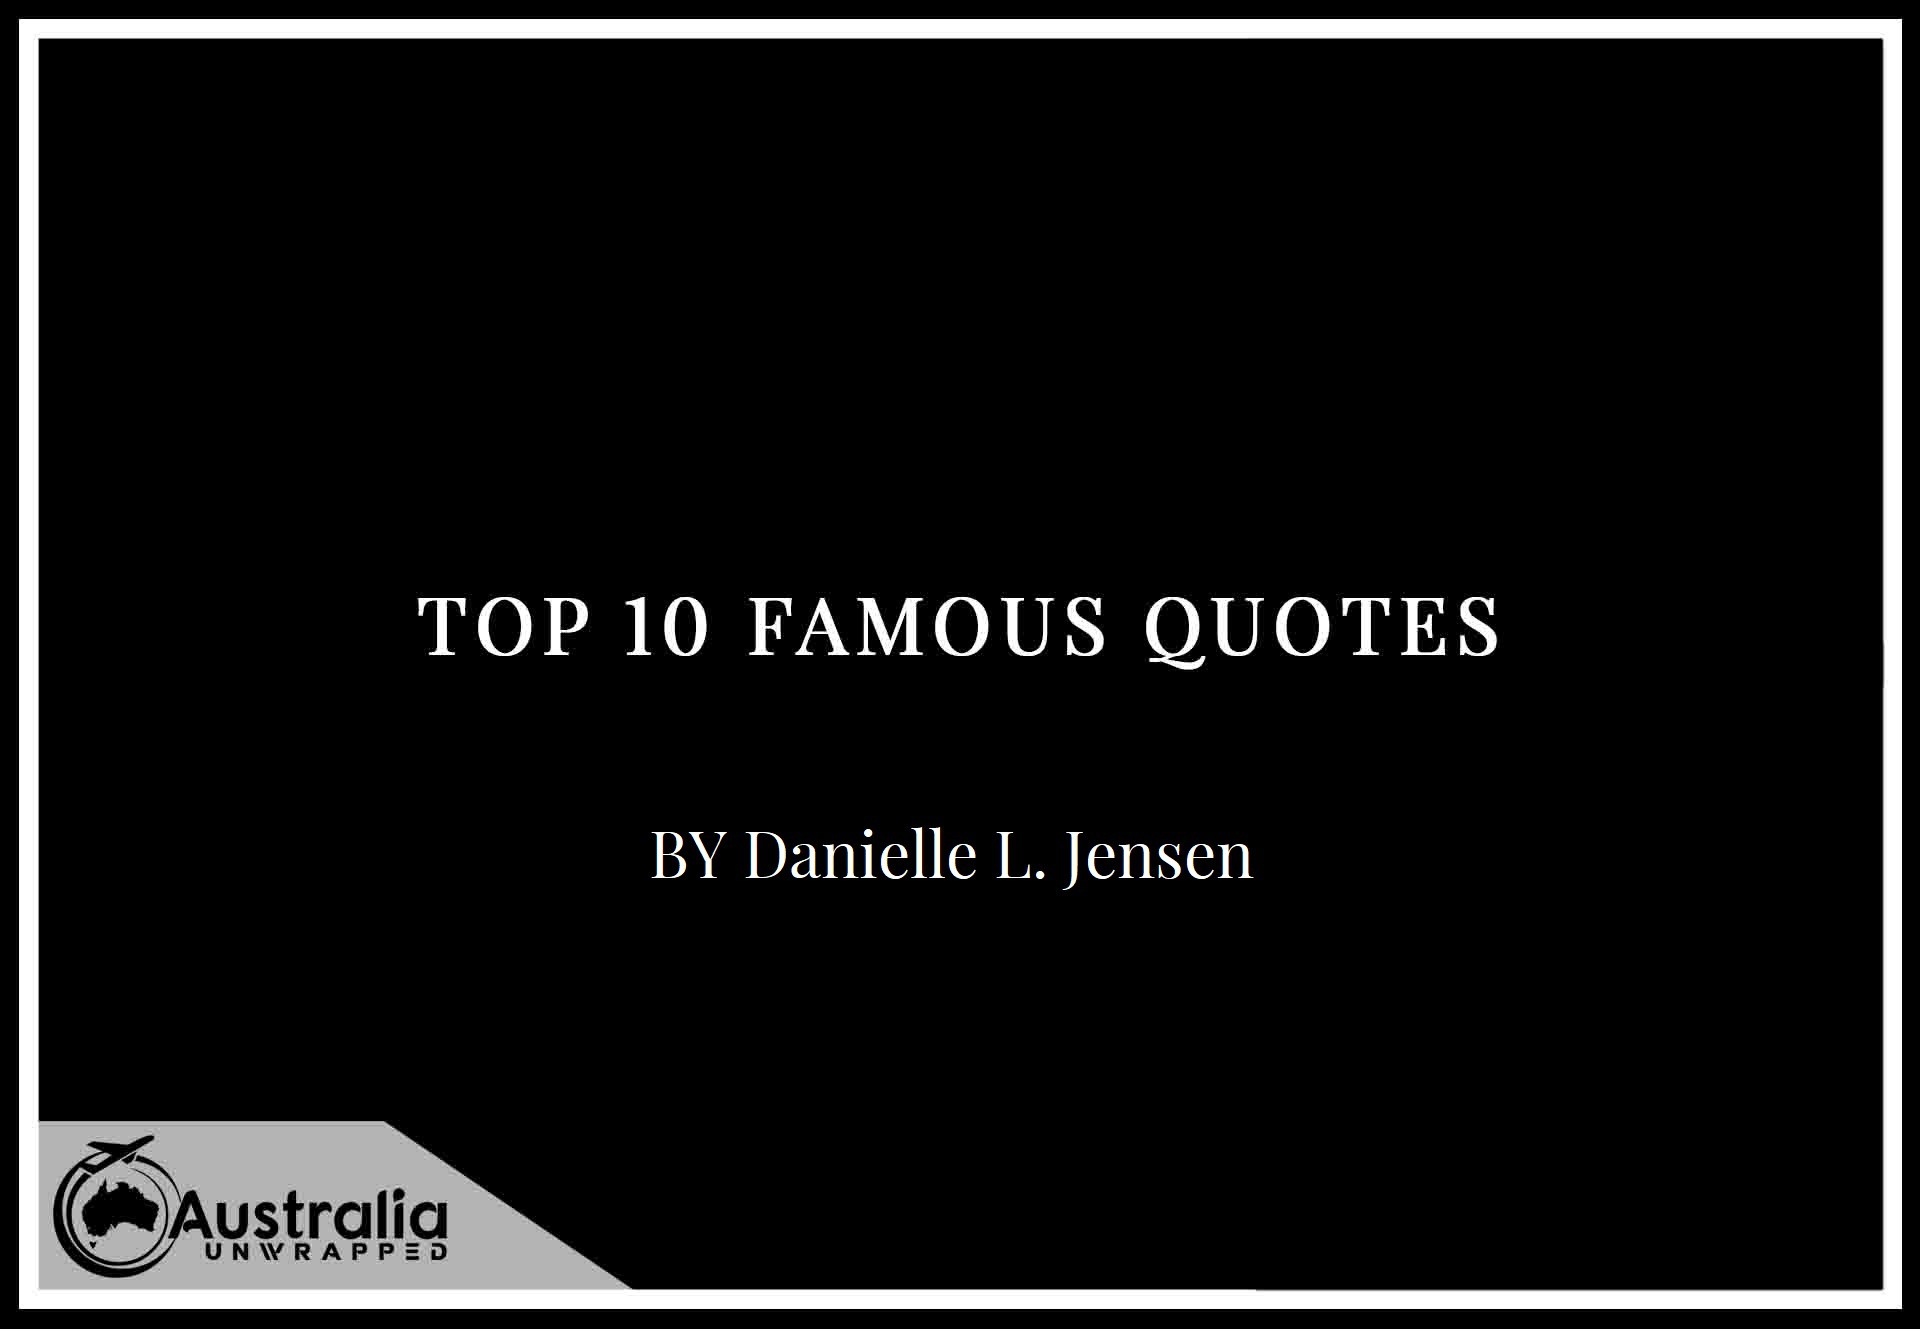 Top 10 Famous Quotes by Author Danielle L. Jensen